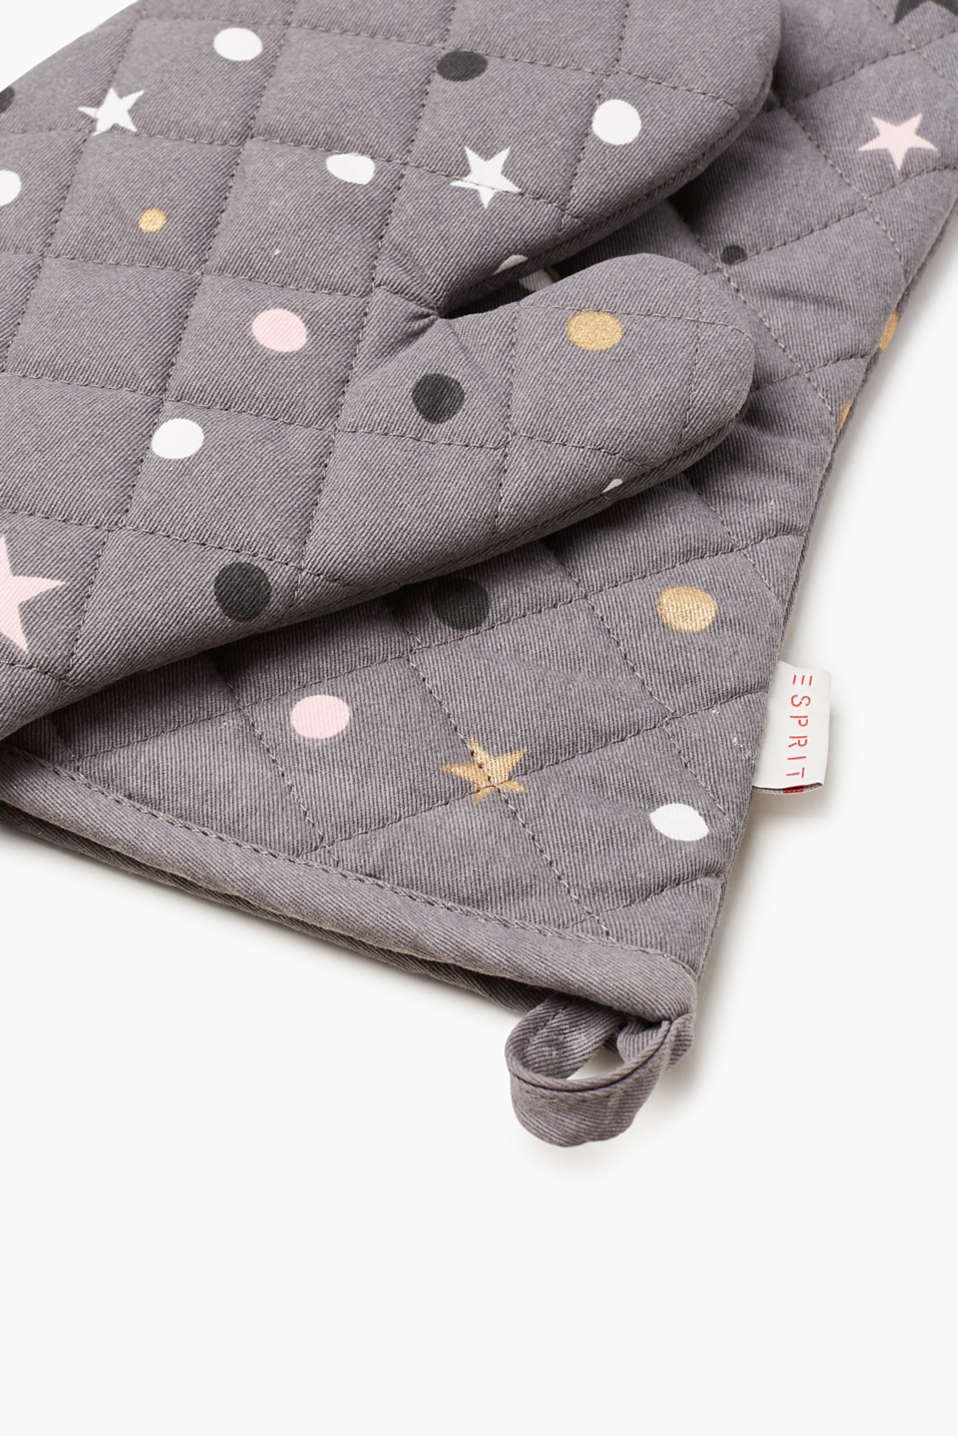 2-piece set of oven gloves with stars